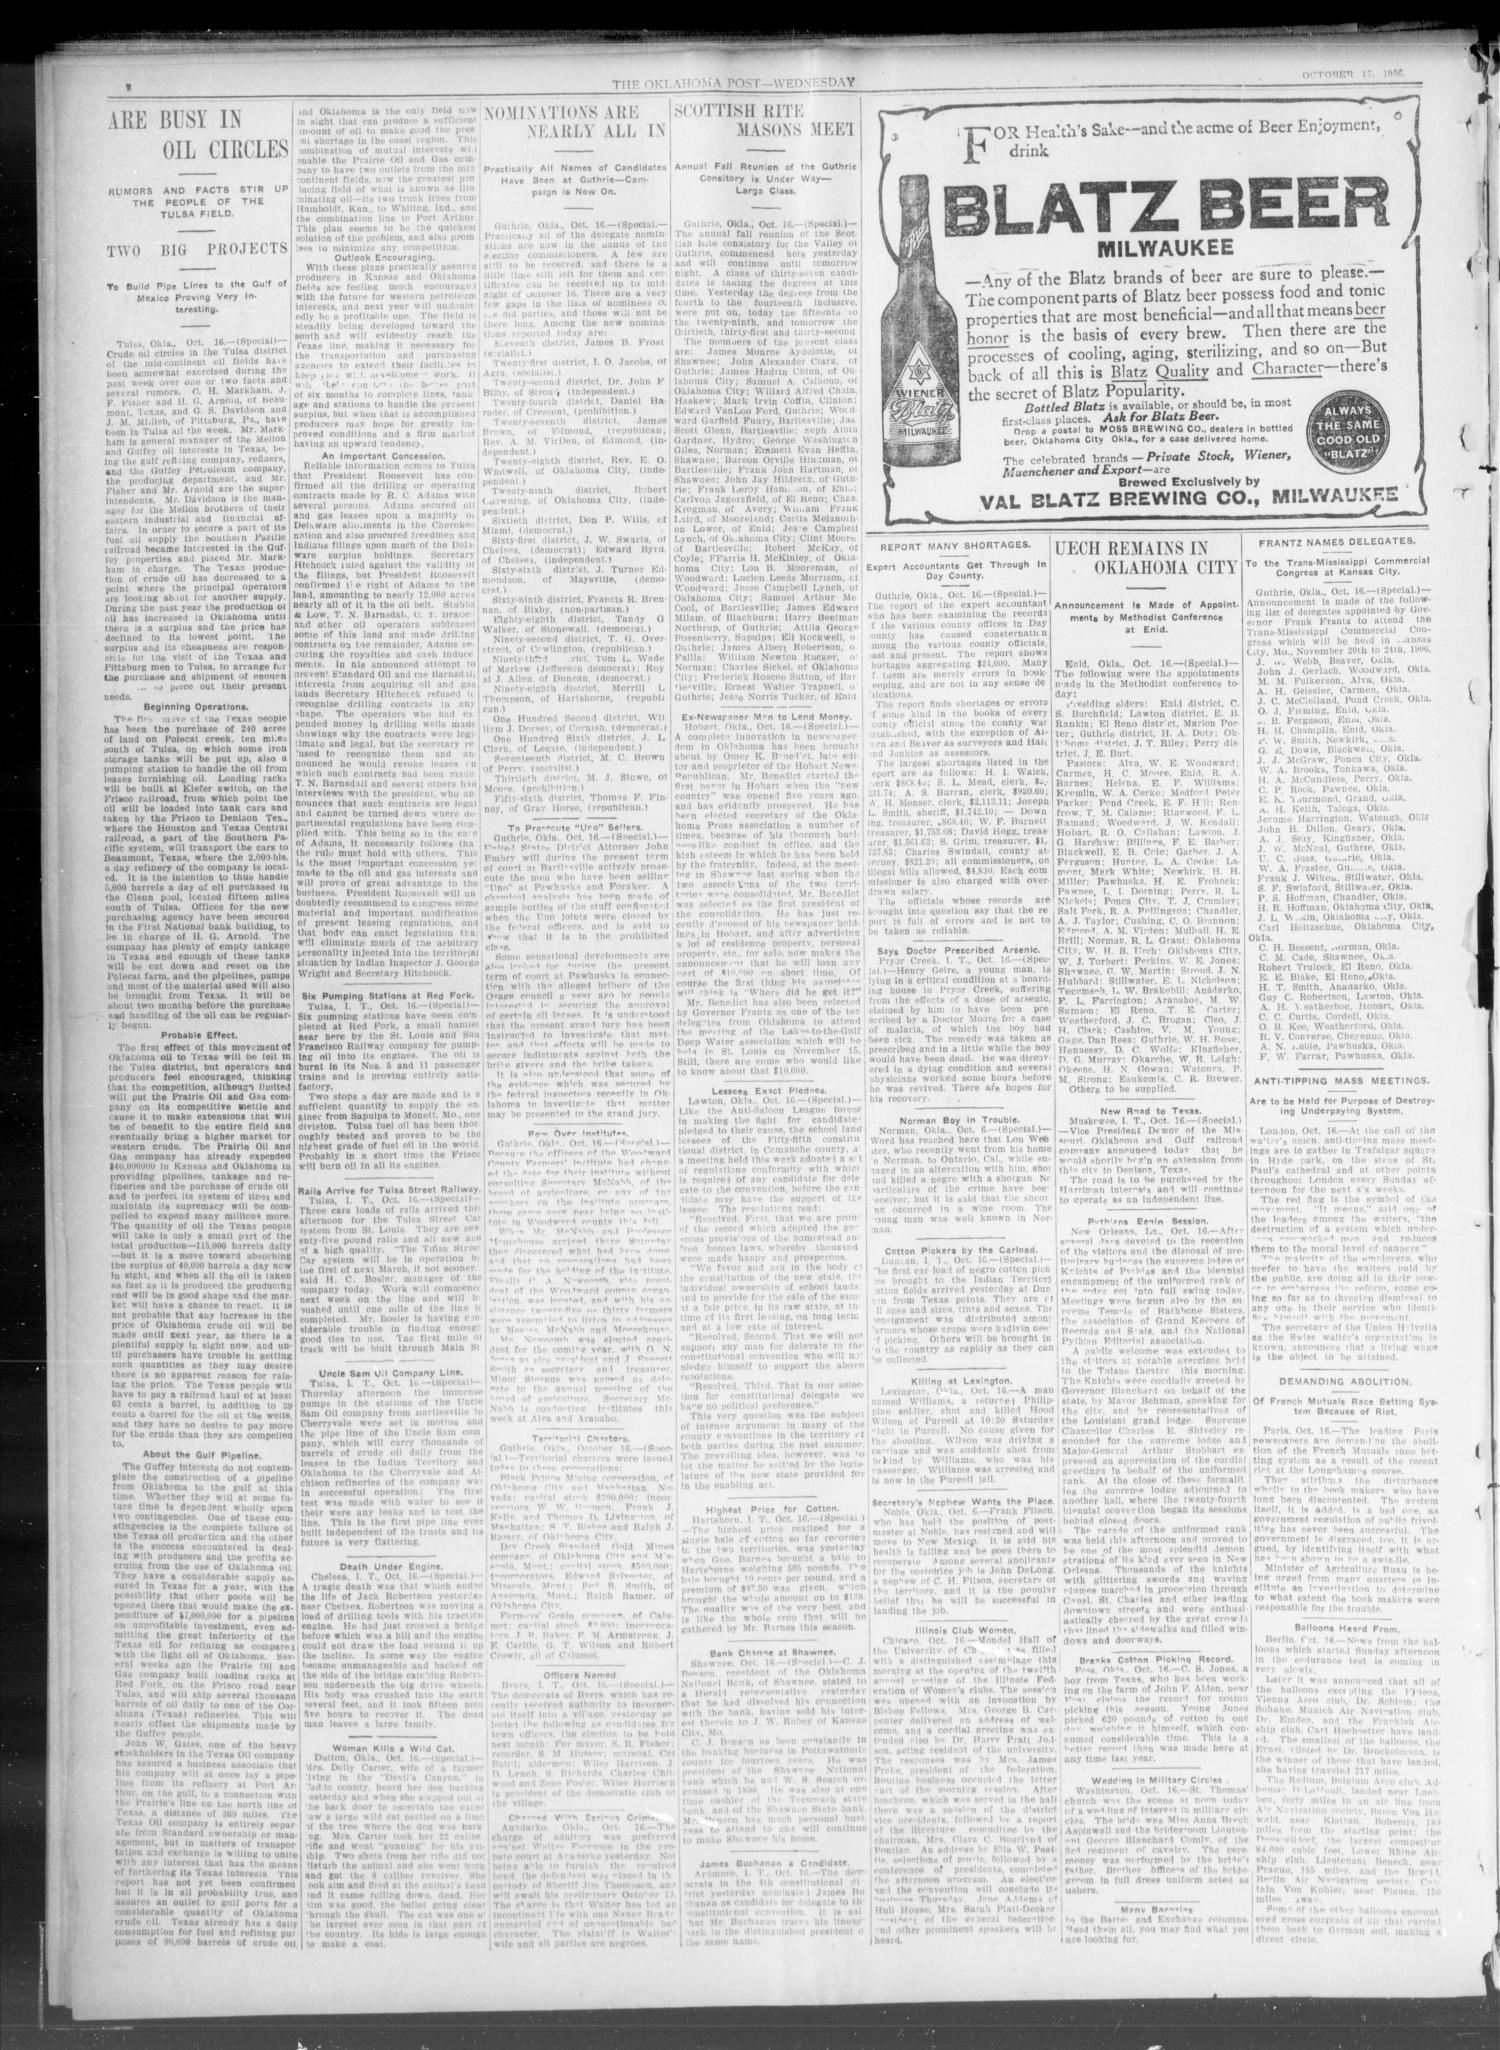 The Oklahoma Post. (Oklahoma City, Okla.), Vol. 5, No. 129, Ed. 1 Wednesday, October 17, 1906                                                                                                      [Sequence #]: 2 of 8